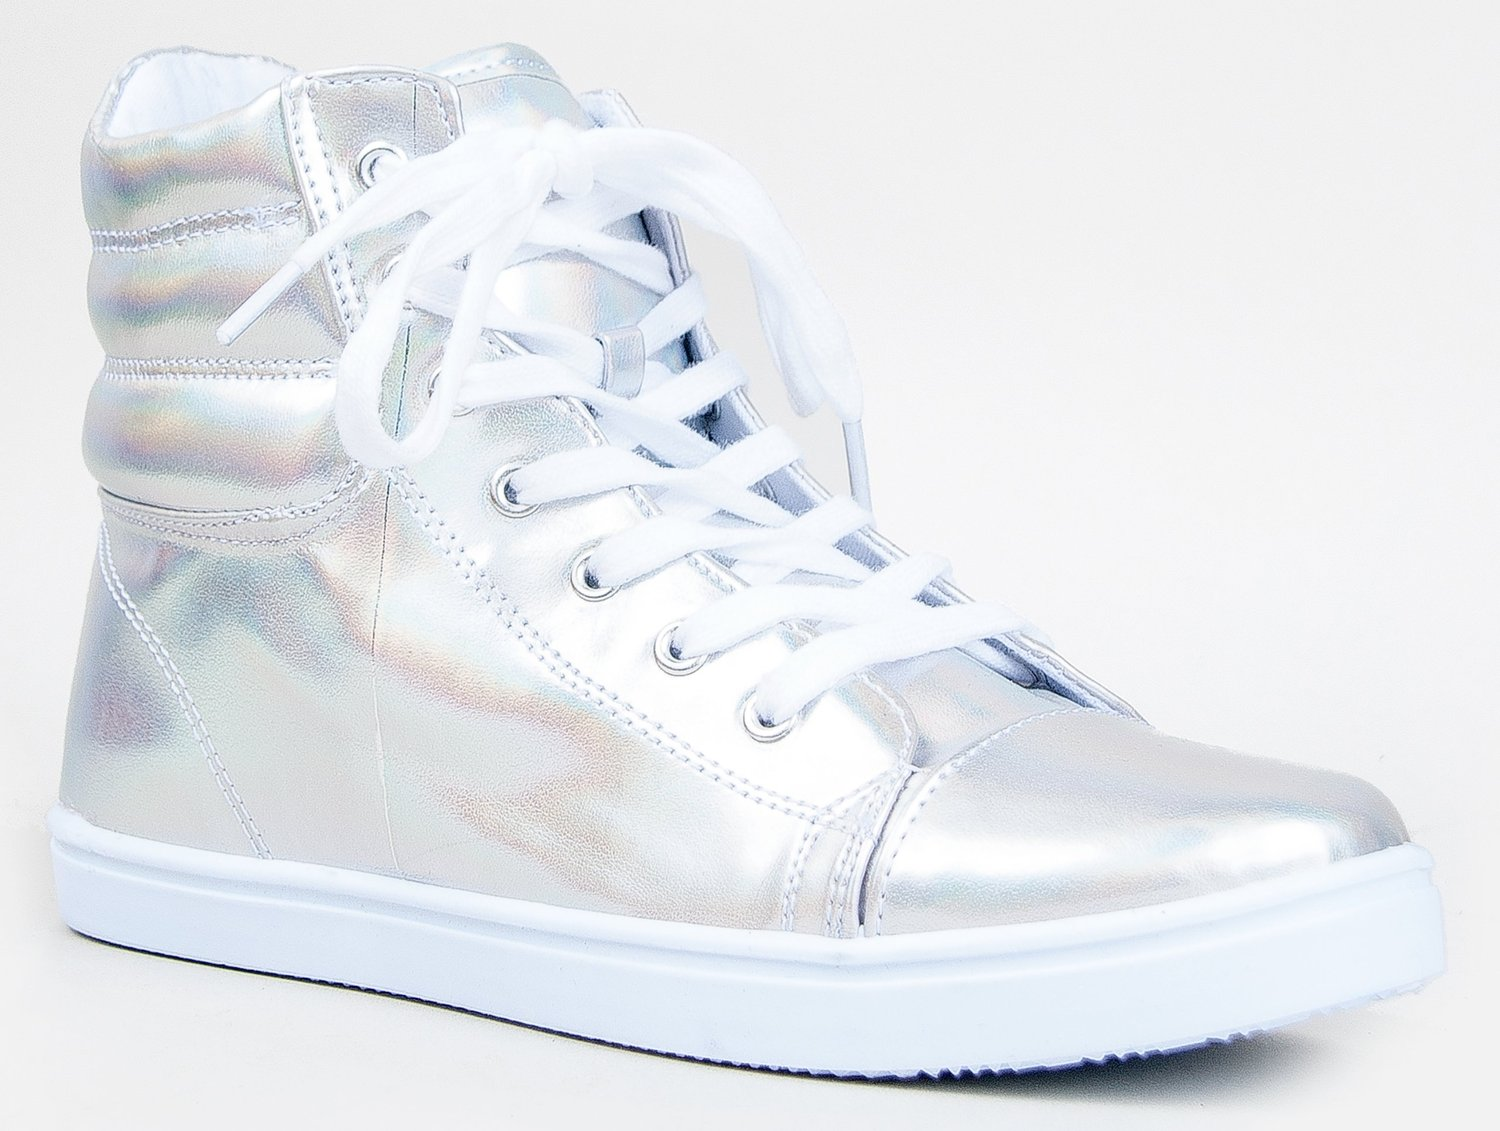 Amazon.com: Qupid TRIVIA-32A High Top Lace Up Hologram Sneaker Shoe: Shoes